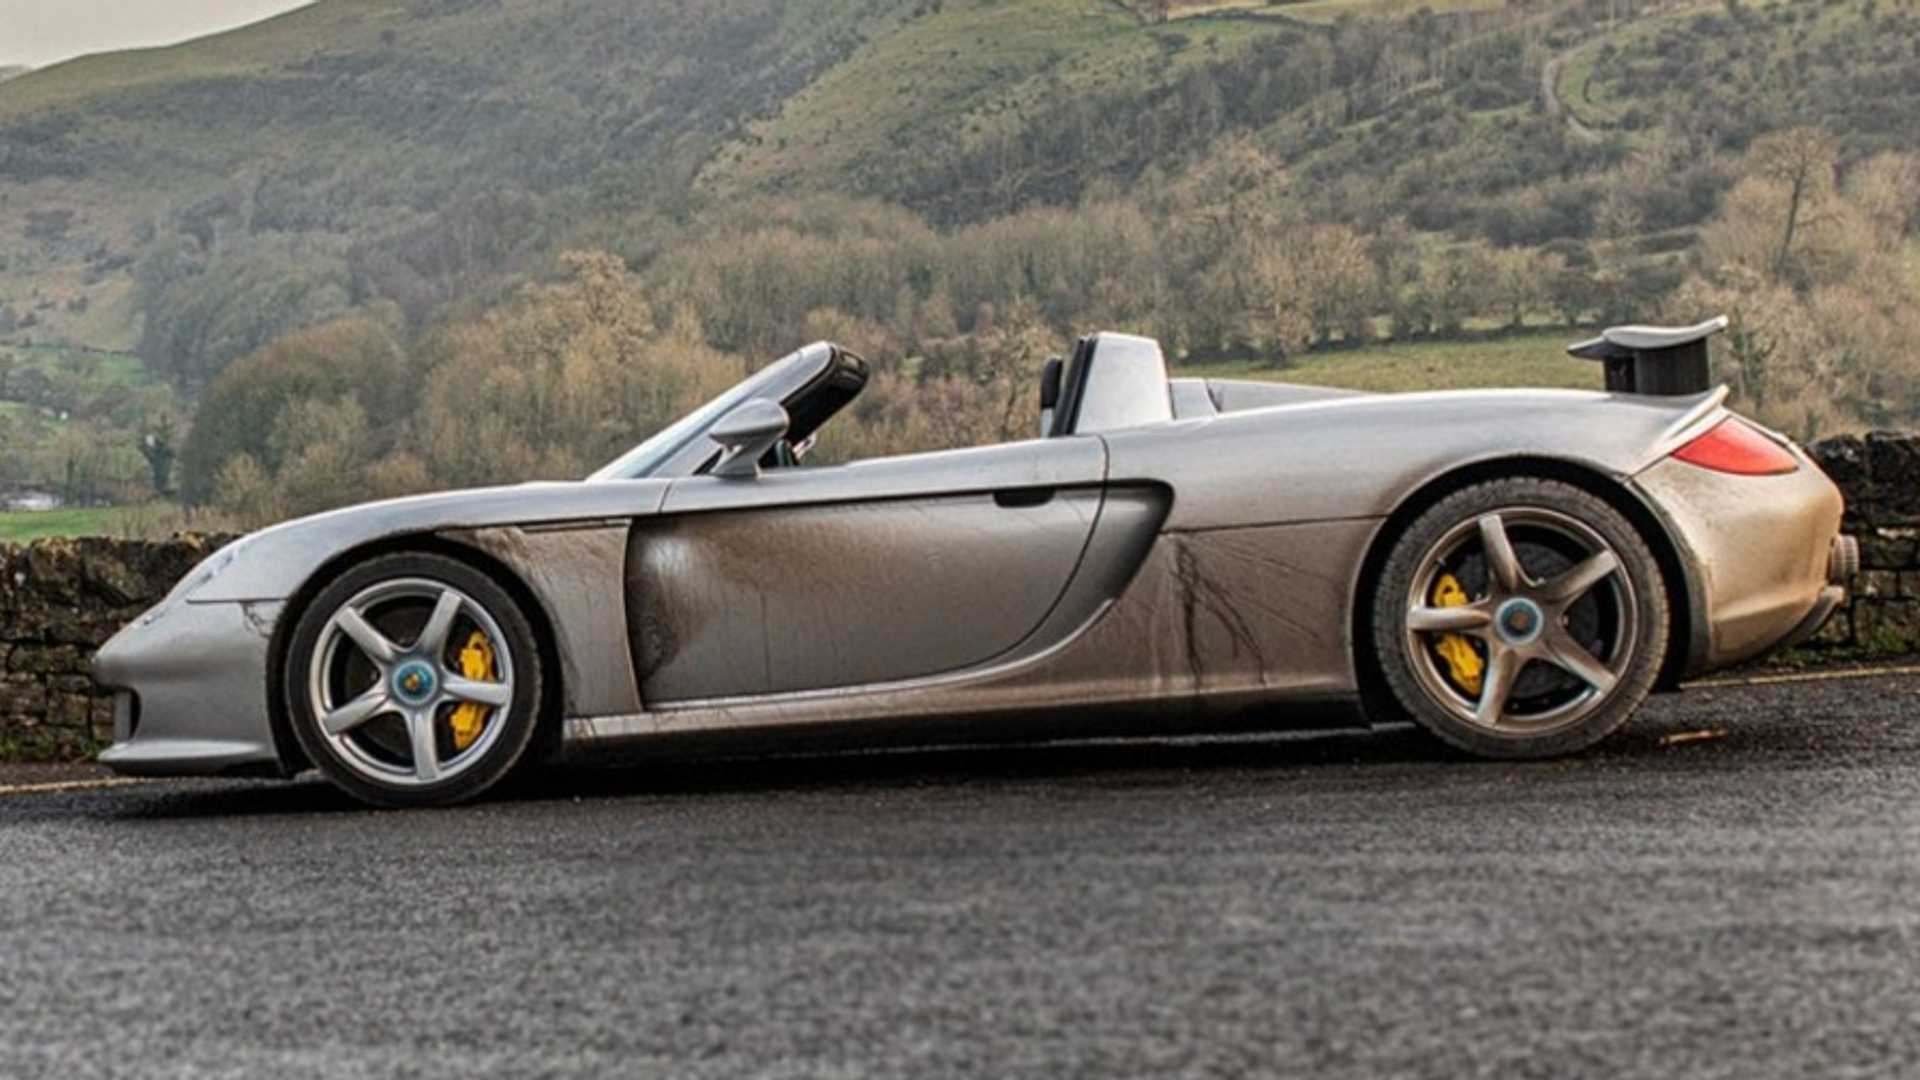 A unique 2004 Porsche Carrera GT with a troubled past just went up on sale for £399,995 (over 500,000 USD). What's so special about it to warrant parting with a sum as large as that?